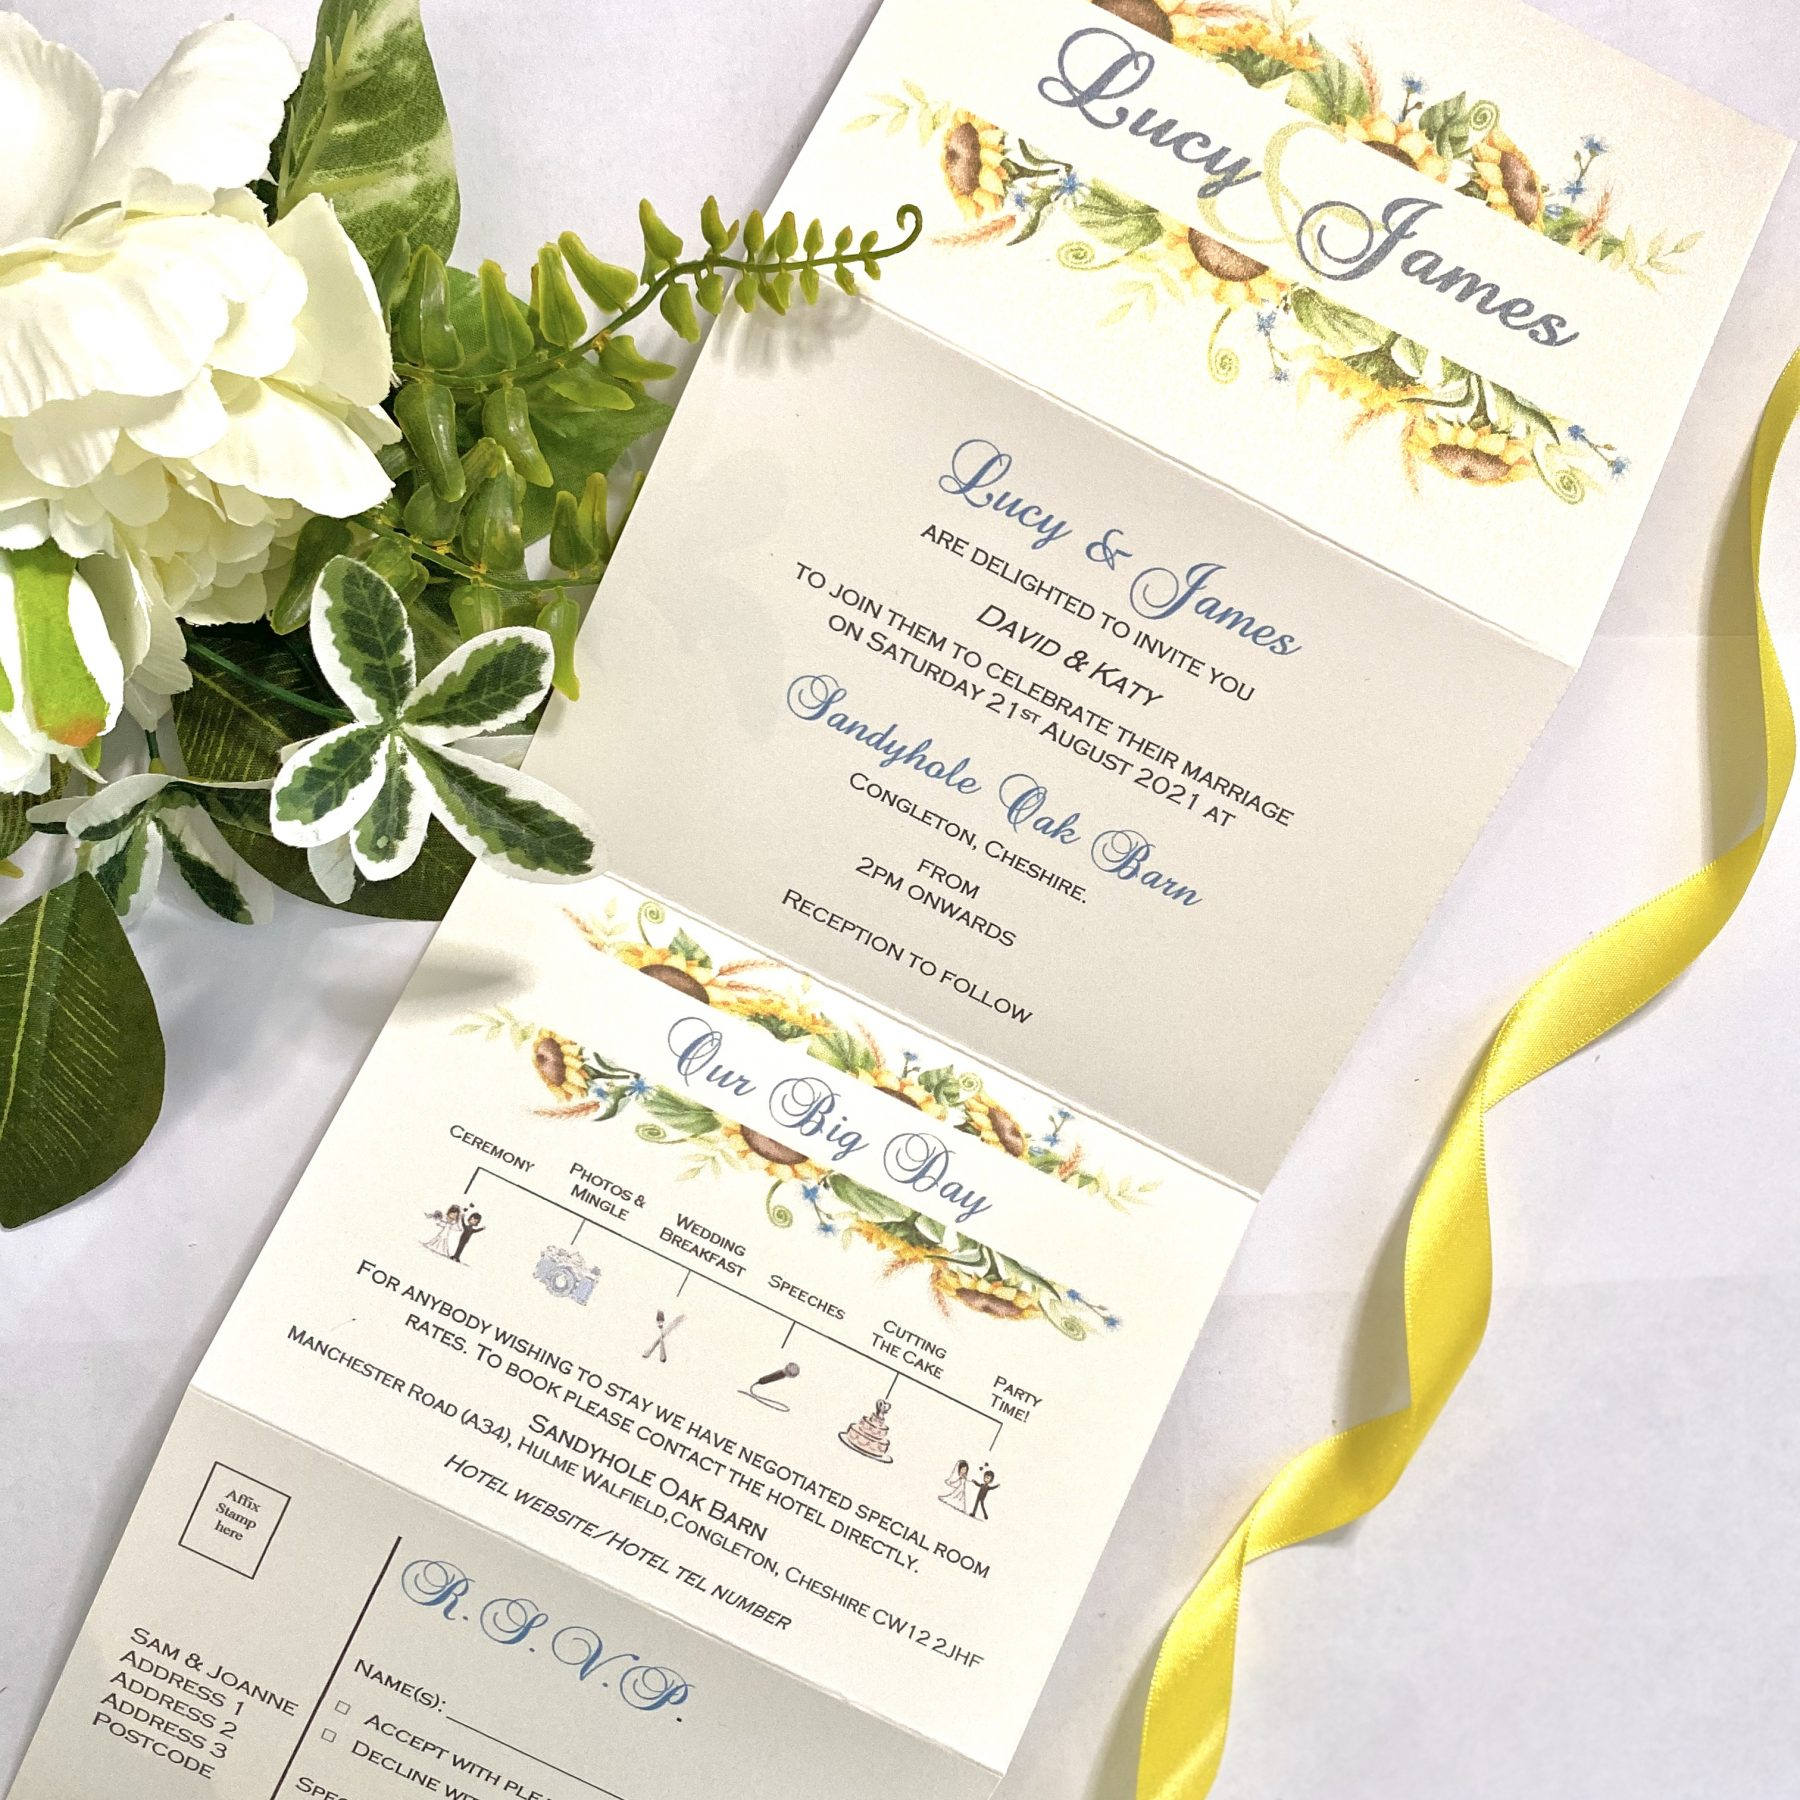 Wedding stationary packages designed by I Do Designs in Stockport